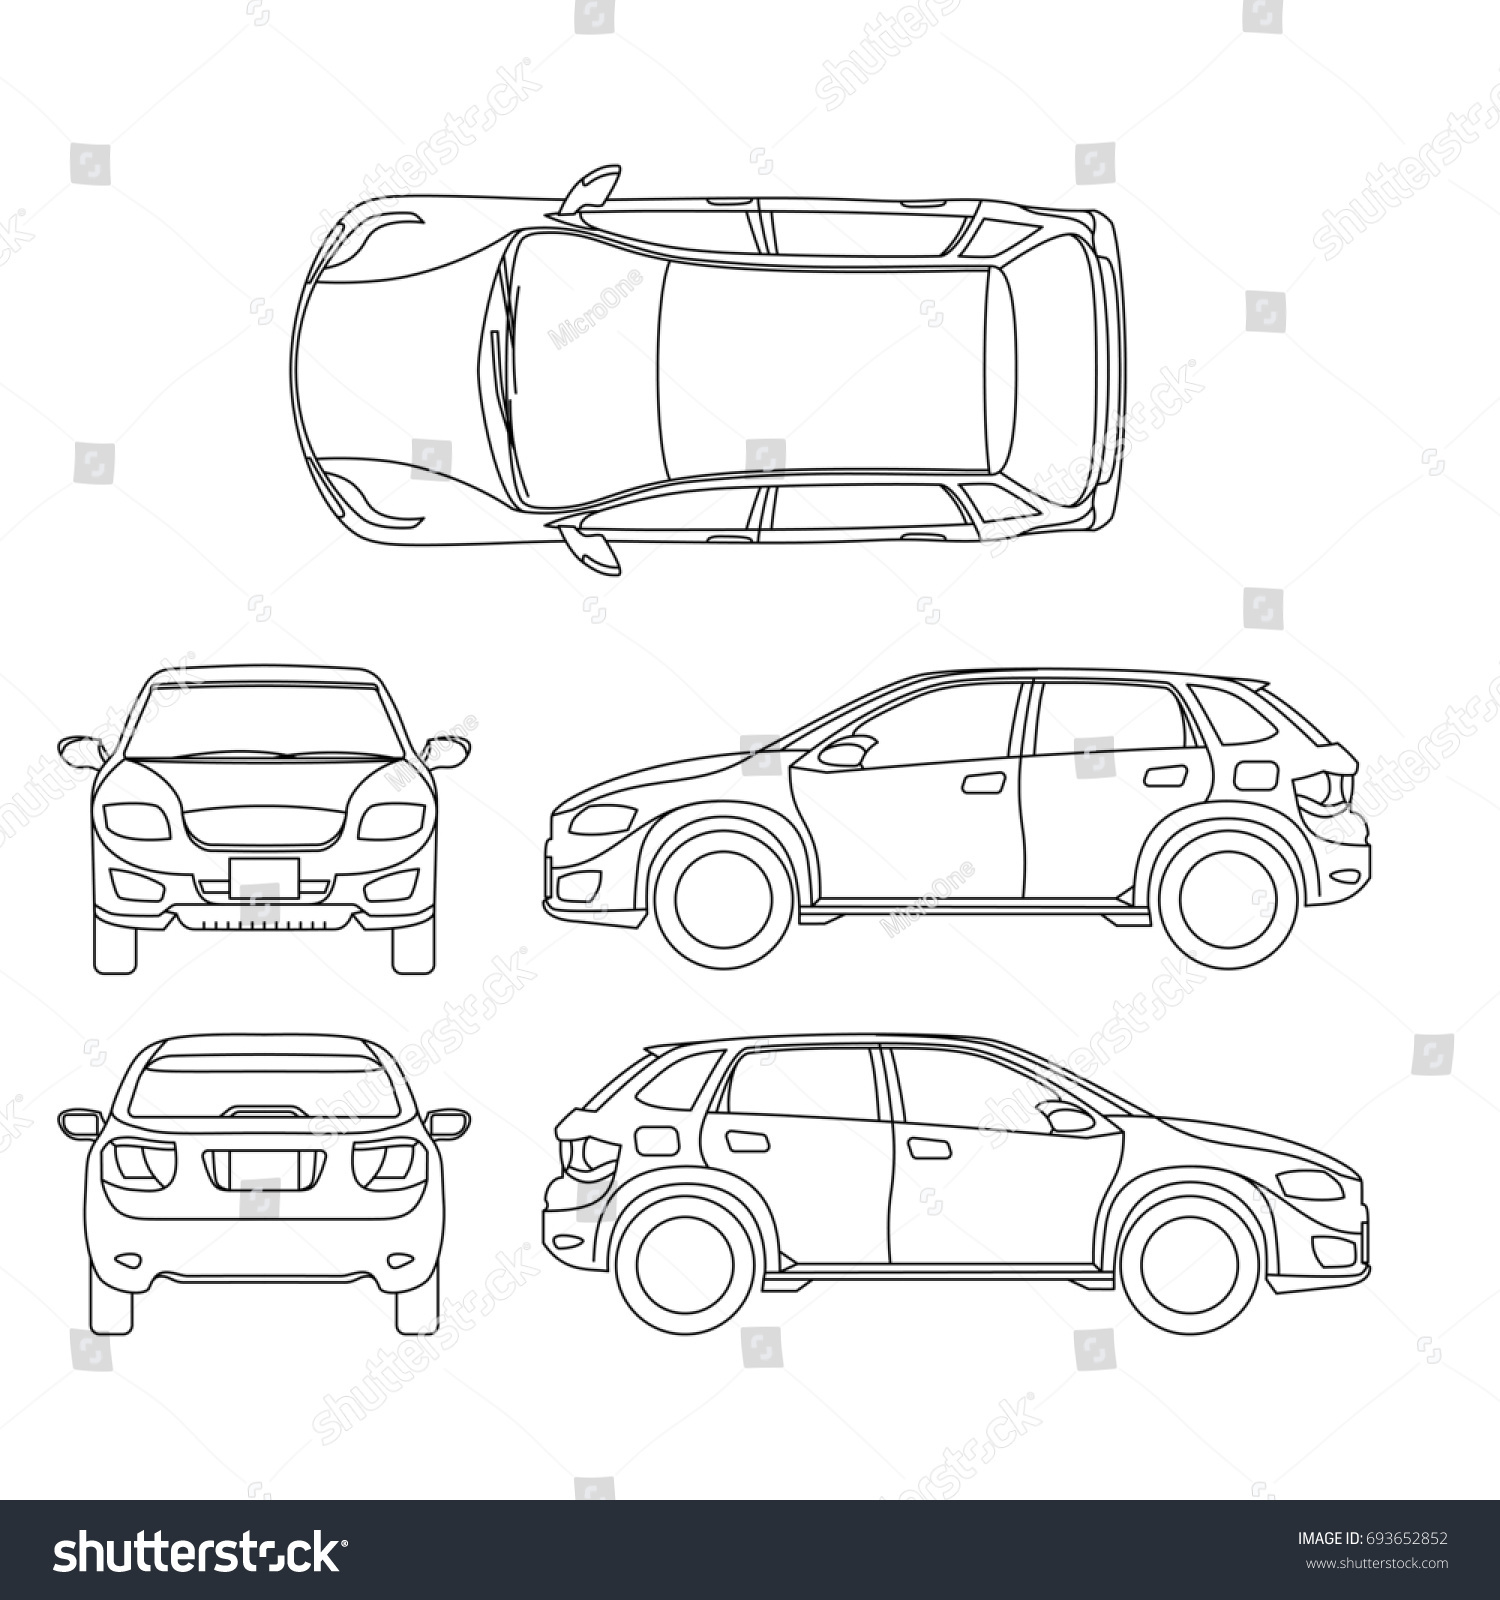 Offroad Suv Auto Outline Vehicle Car Stock Illustration 693652852 ...